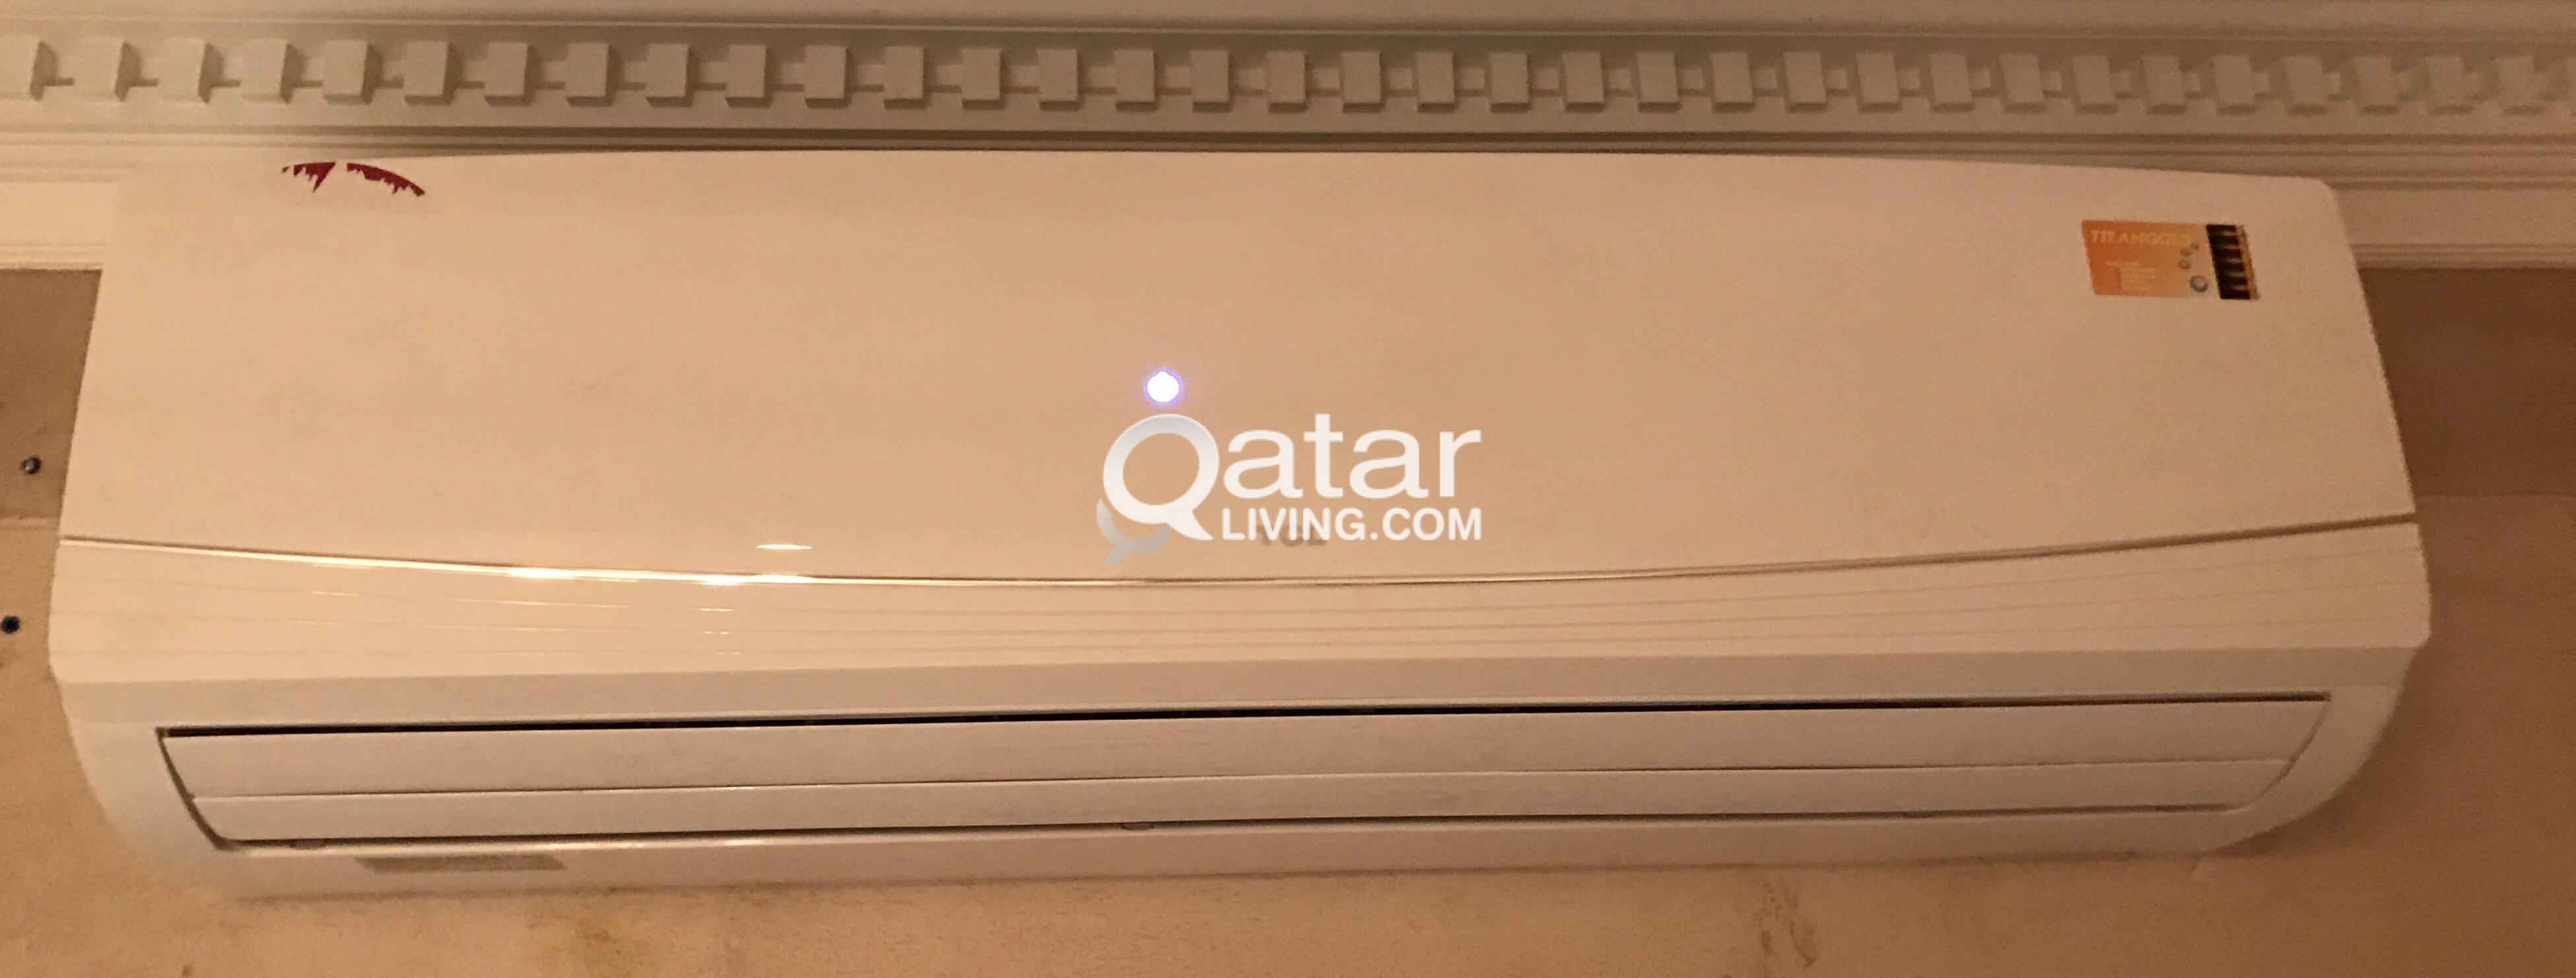 New TCL 1 5 ton and 2 ton Split Ac units | Qatar Living